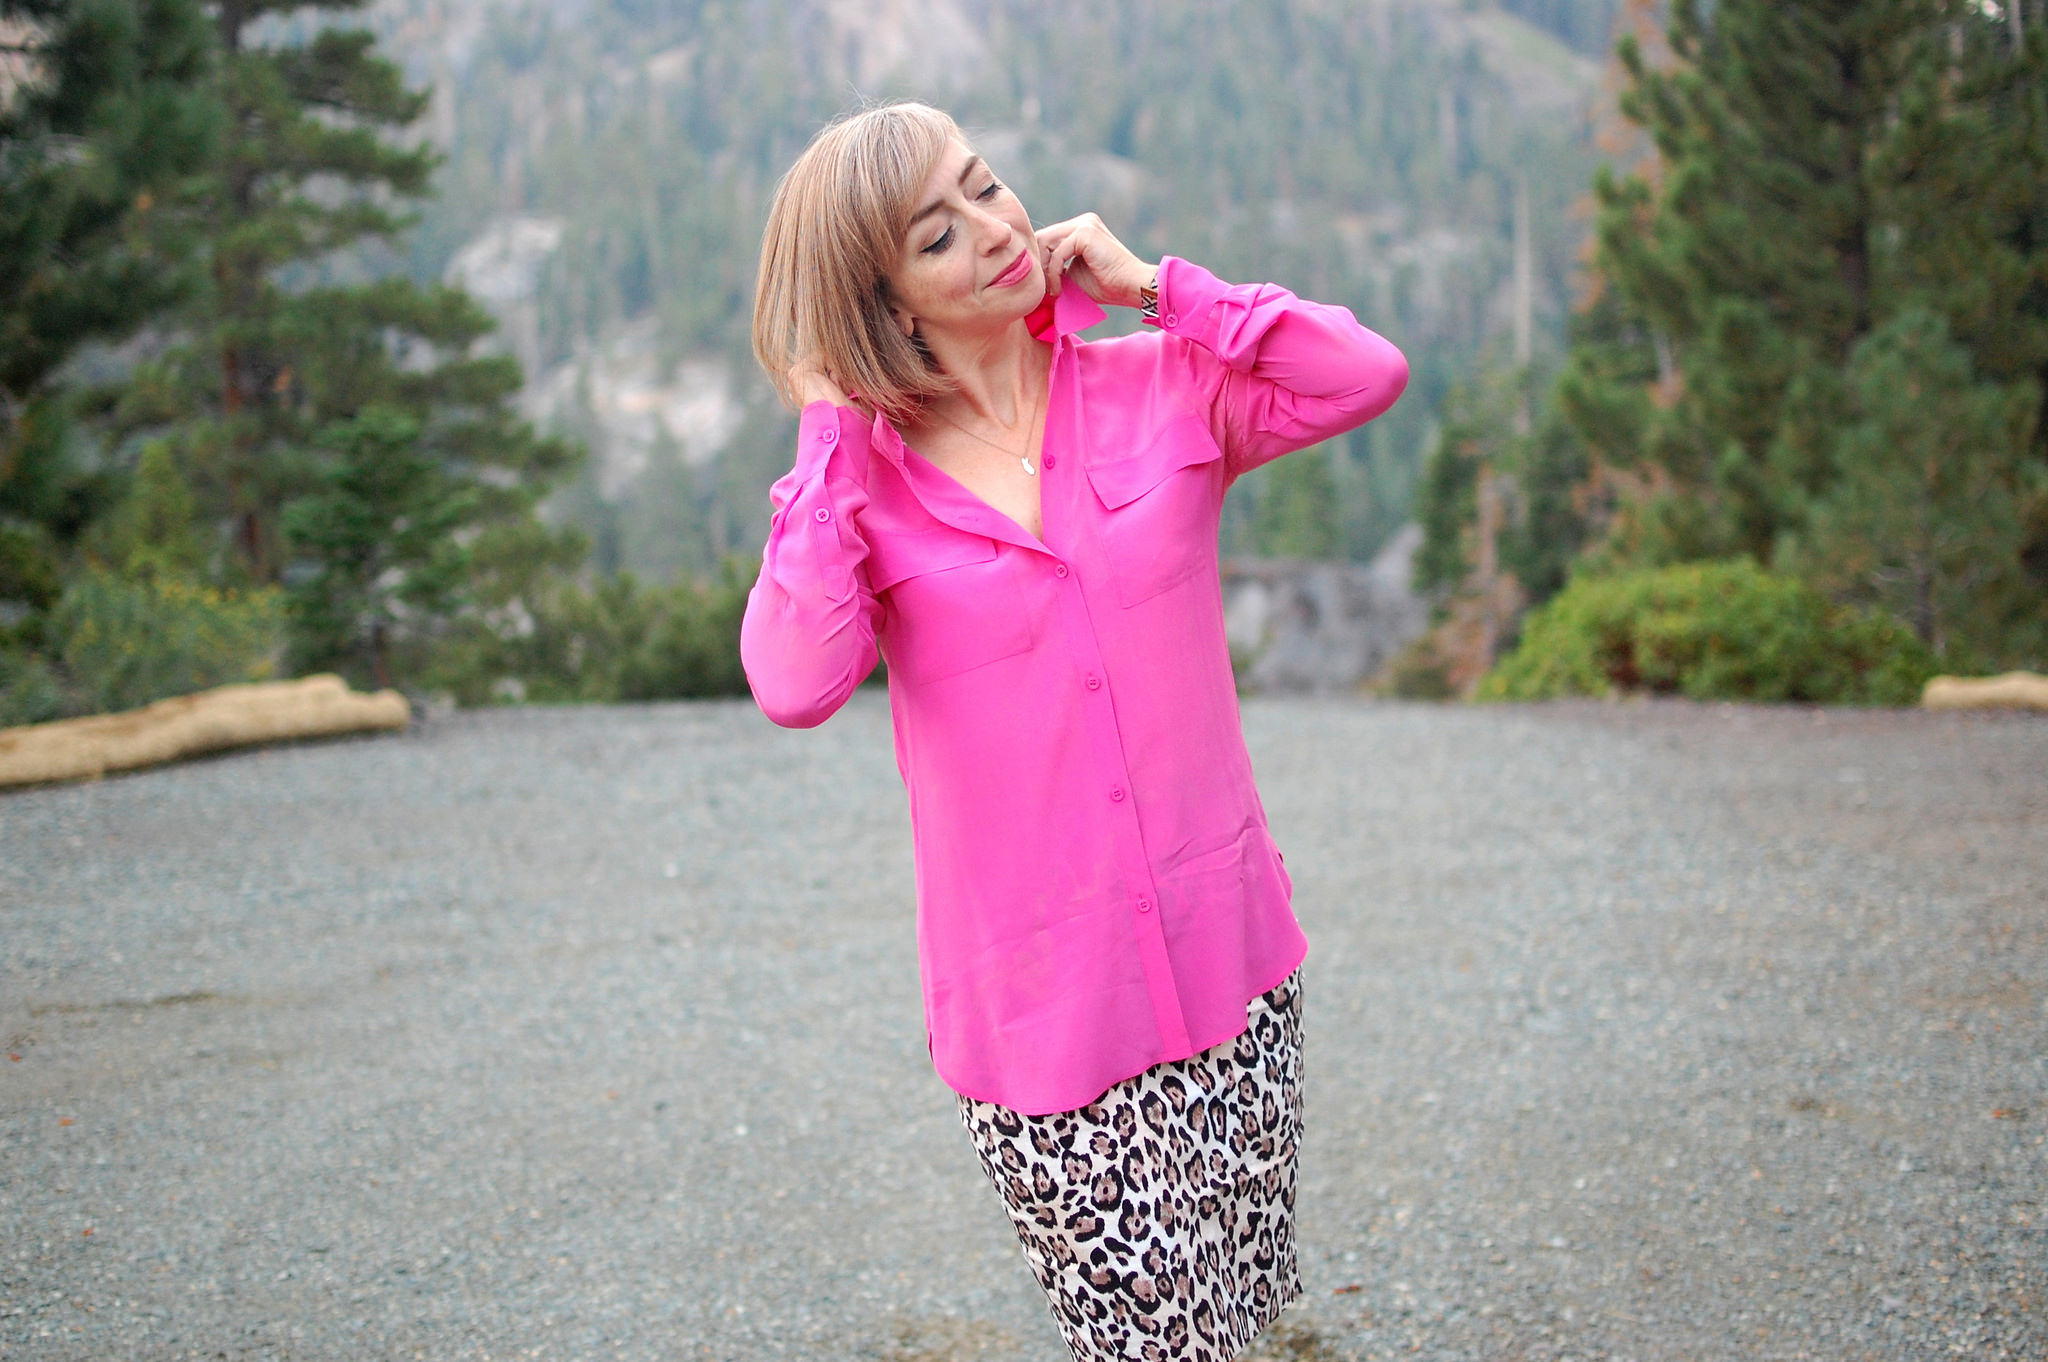 pink leopard business casual ootd daily outfit blog whatiwore2day